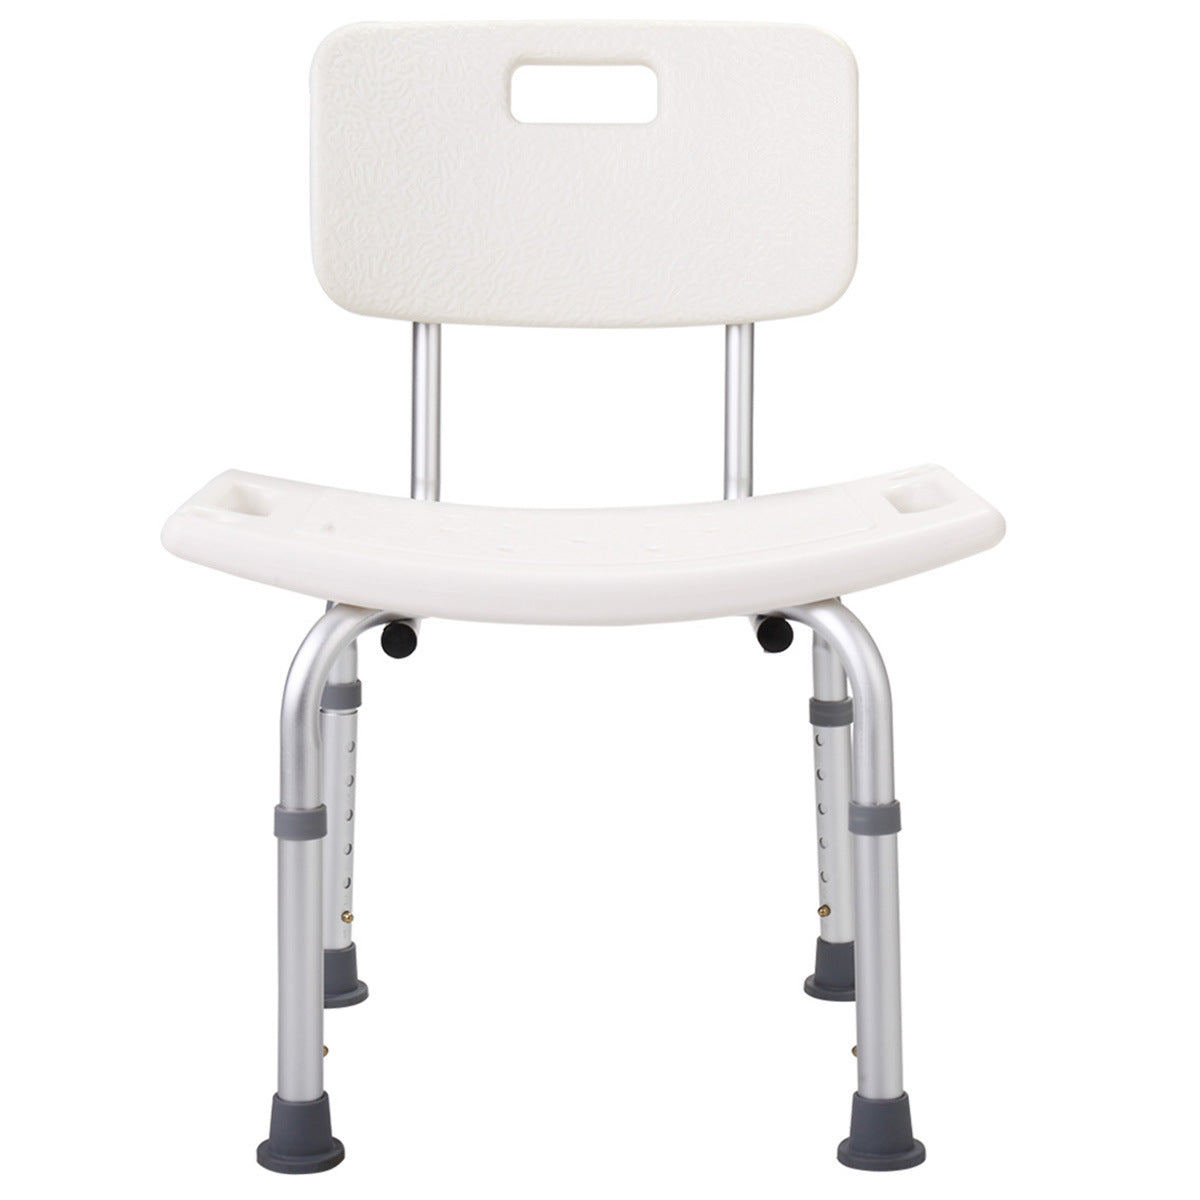 Bathroom Safety Shower Tub Heavy Duty Aluminium Alloy Bath Chair Bench with Back XH